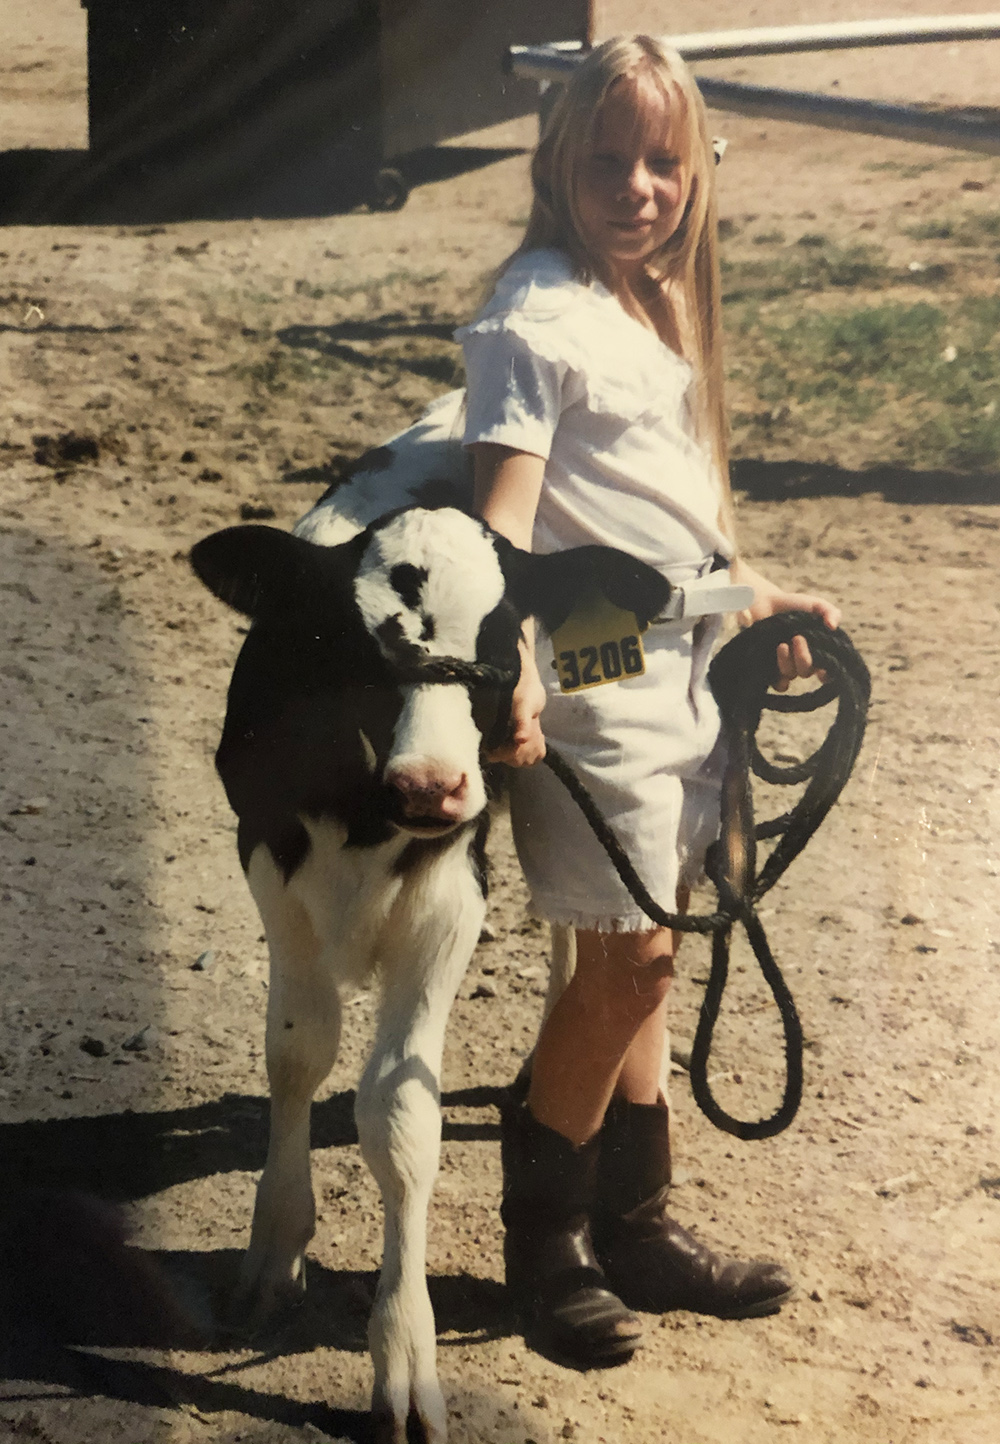 Vintage photo of a young girl with a cow calf